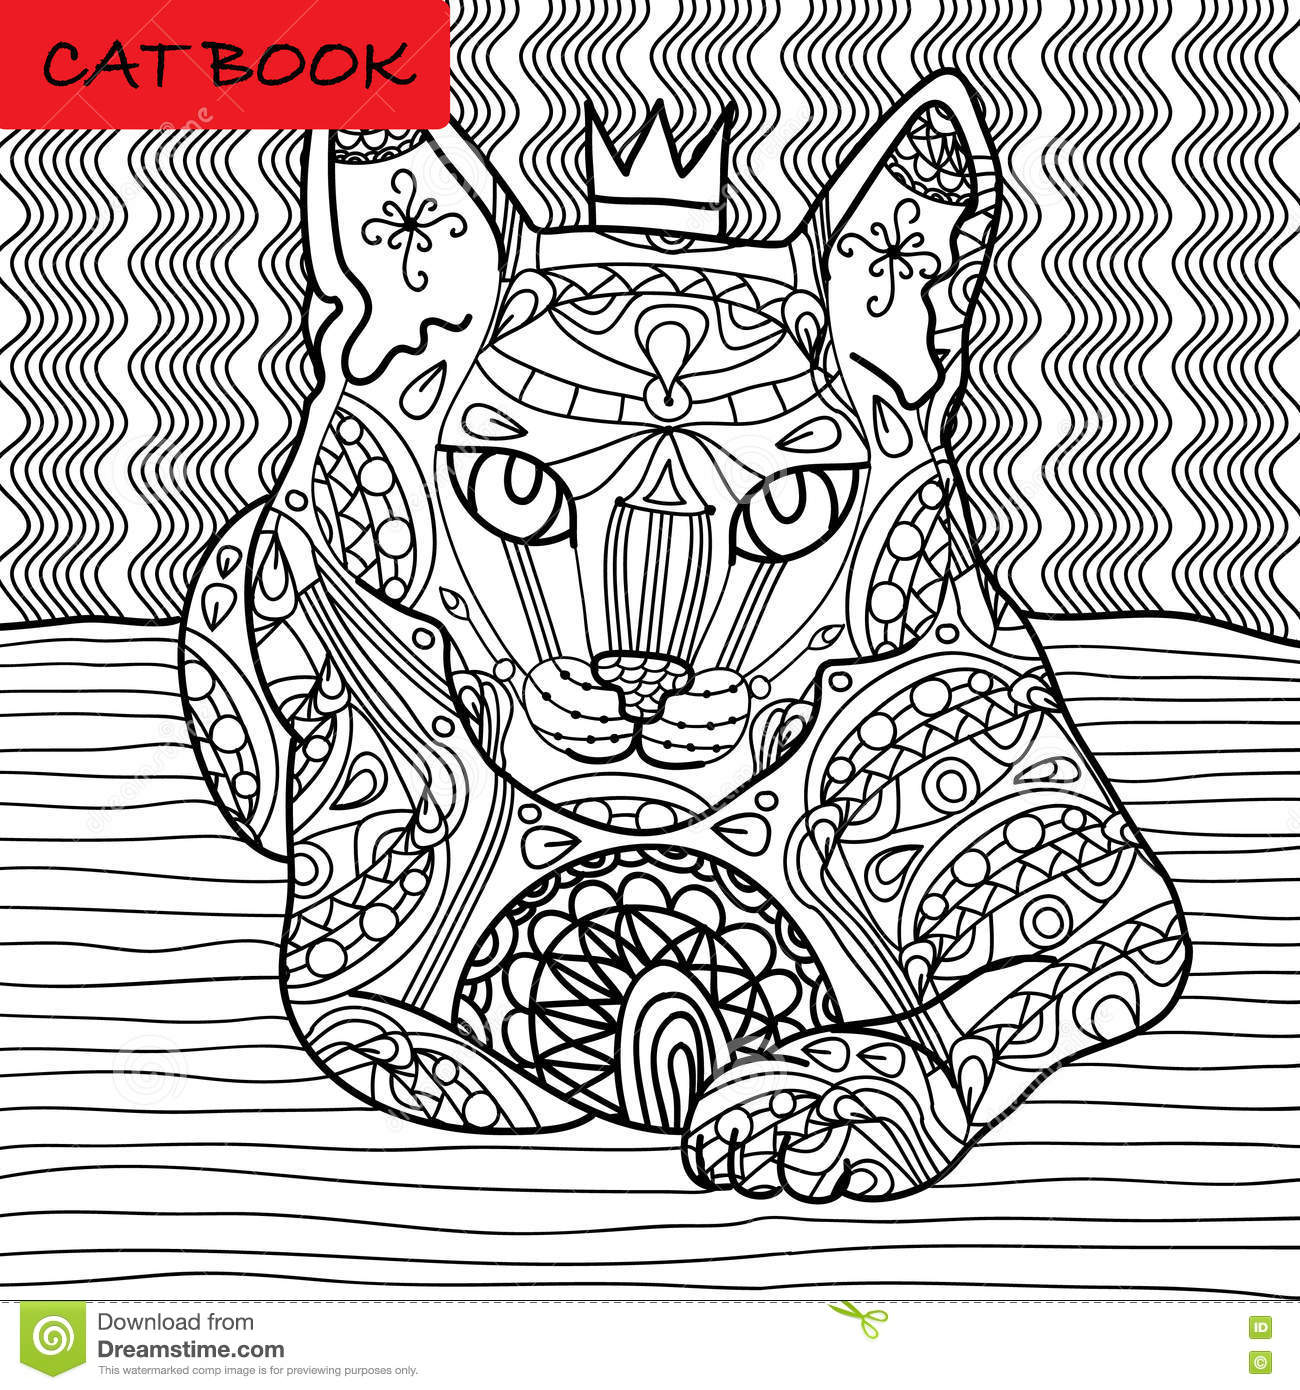 Coloring cat page for adults majestic cat with the crown Majestic animals coloring book